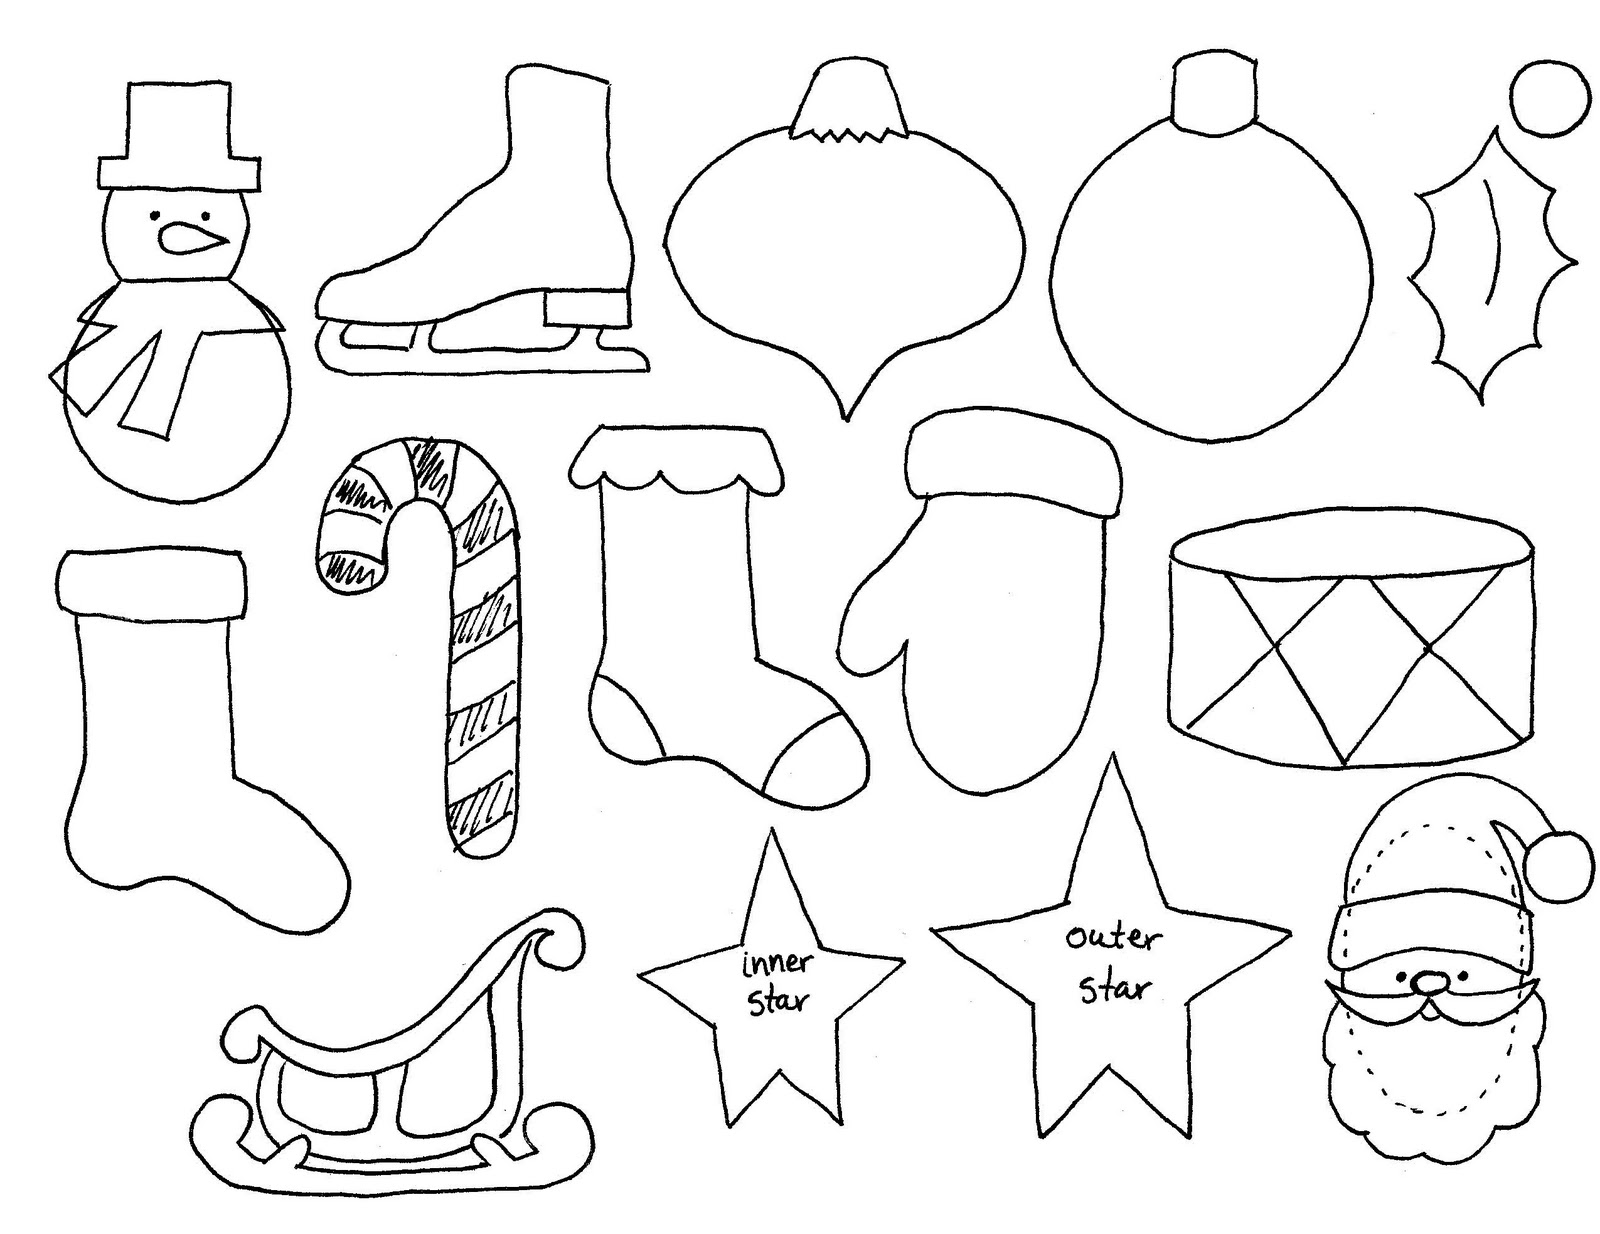 Drawn christmas ornaments color cut out Sew homemade advent advent ornament